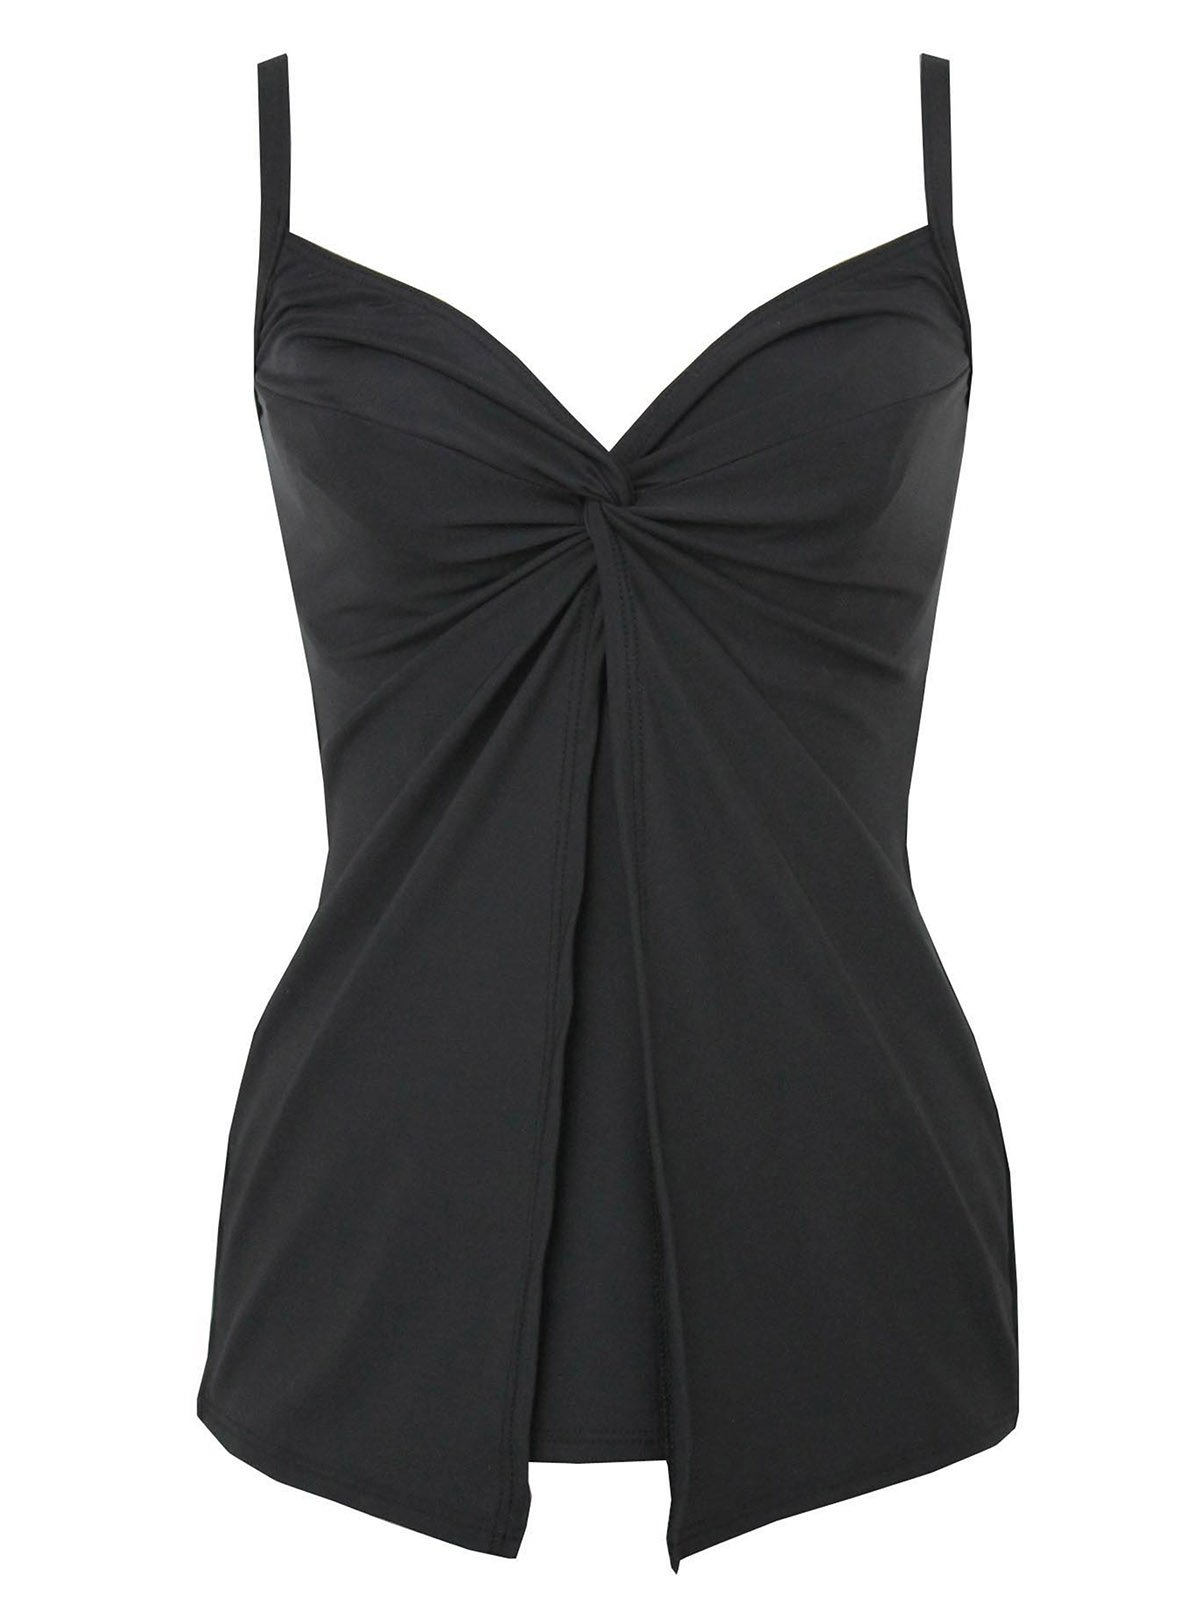 Miraclesuit Women's Miracle Solids Love Knot Underwire Tankini Top Black 16